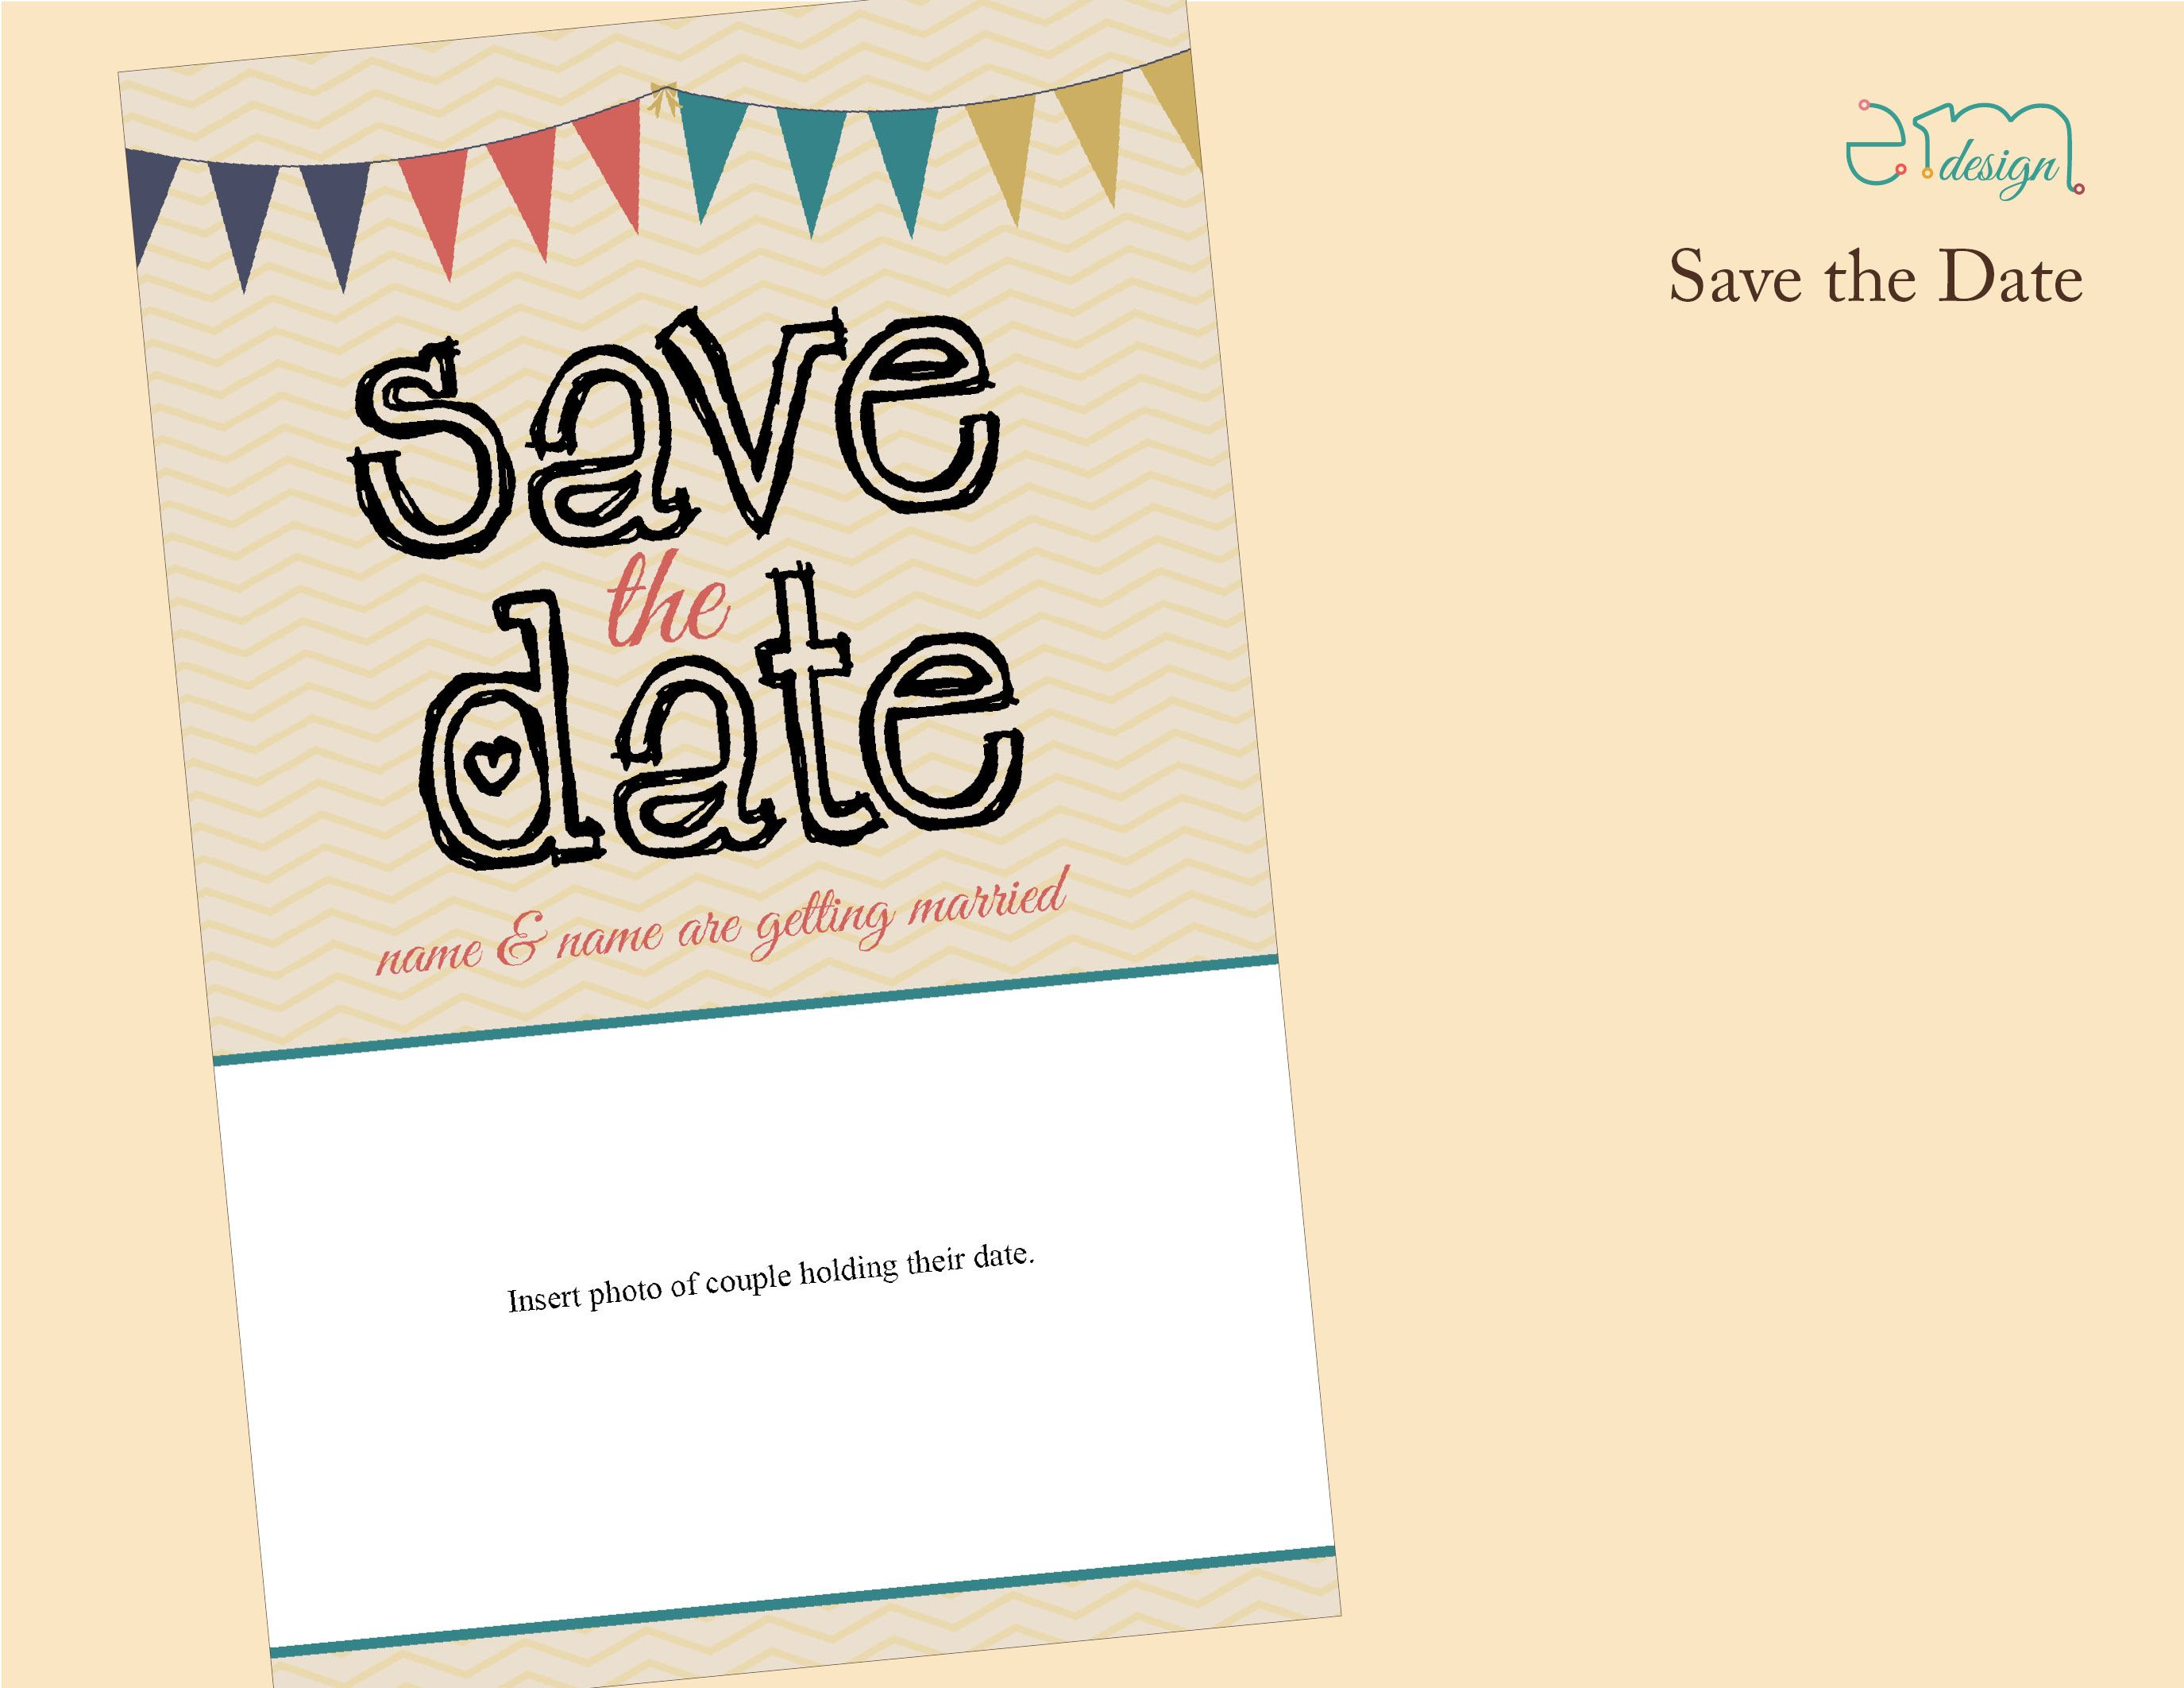 Simple Chevron Save the Date with Photo of Couple, by EmDesign.